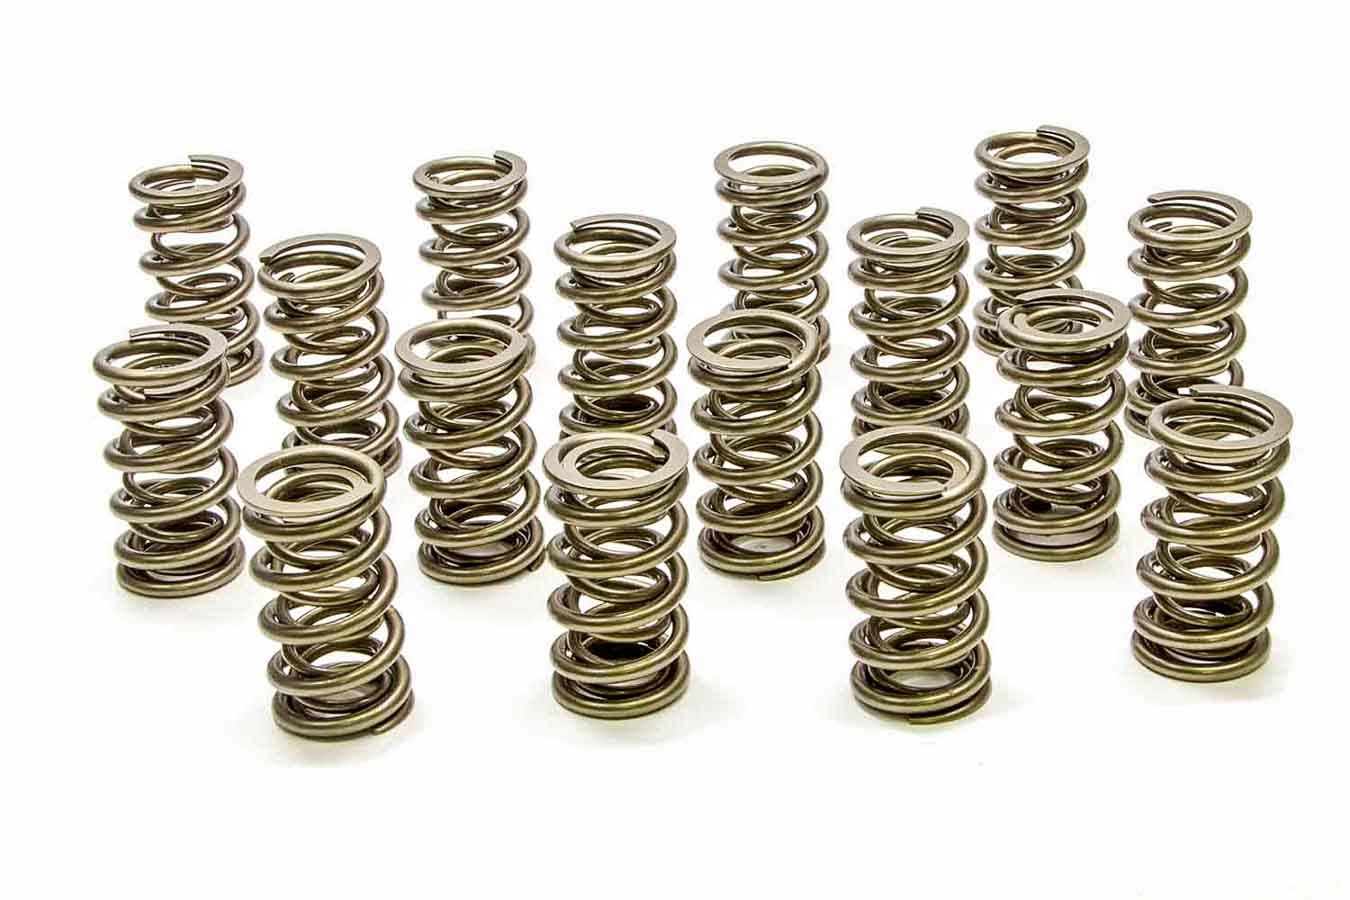 PAC Racing Springs PAC-1208X Valve Spring, RPM Series, Dual Spring, 460 lb/in Spring Rate, 1.000 in Coil Bind, 1.324 in OD, GM LS-Series, Set of 16